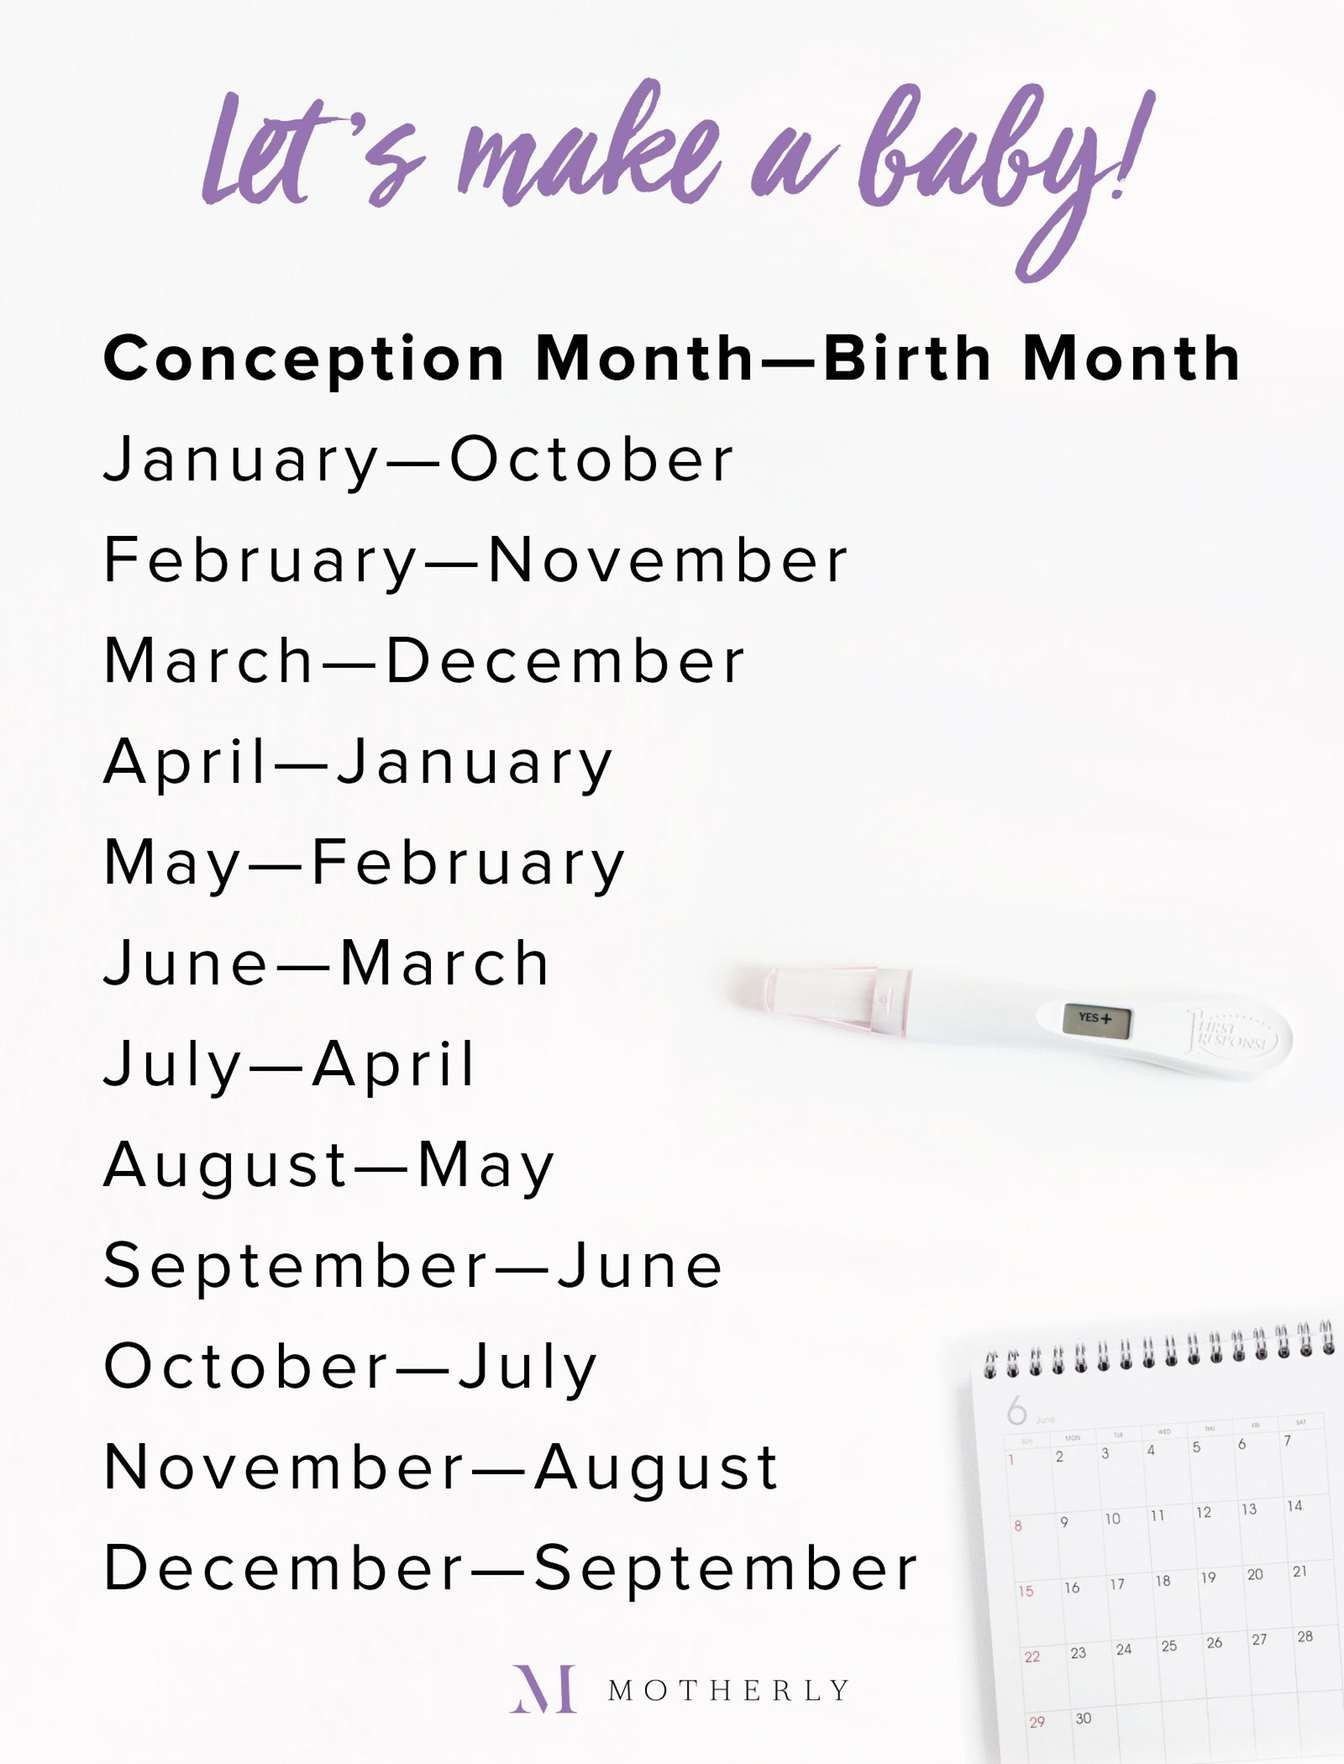 March Reading Month Calendar Activities Más Reciente What Month Will My Baby Be Born Due Date Graphic Calculator Of March Reading Month Calendar Activities Más Populares Old Style and New Style Dates